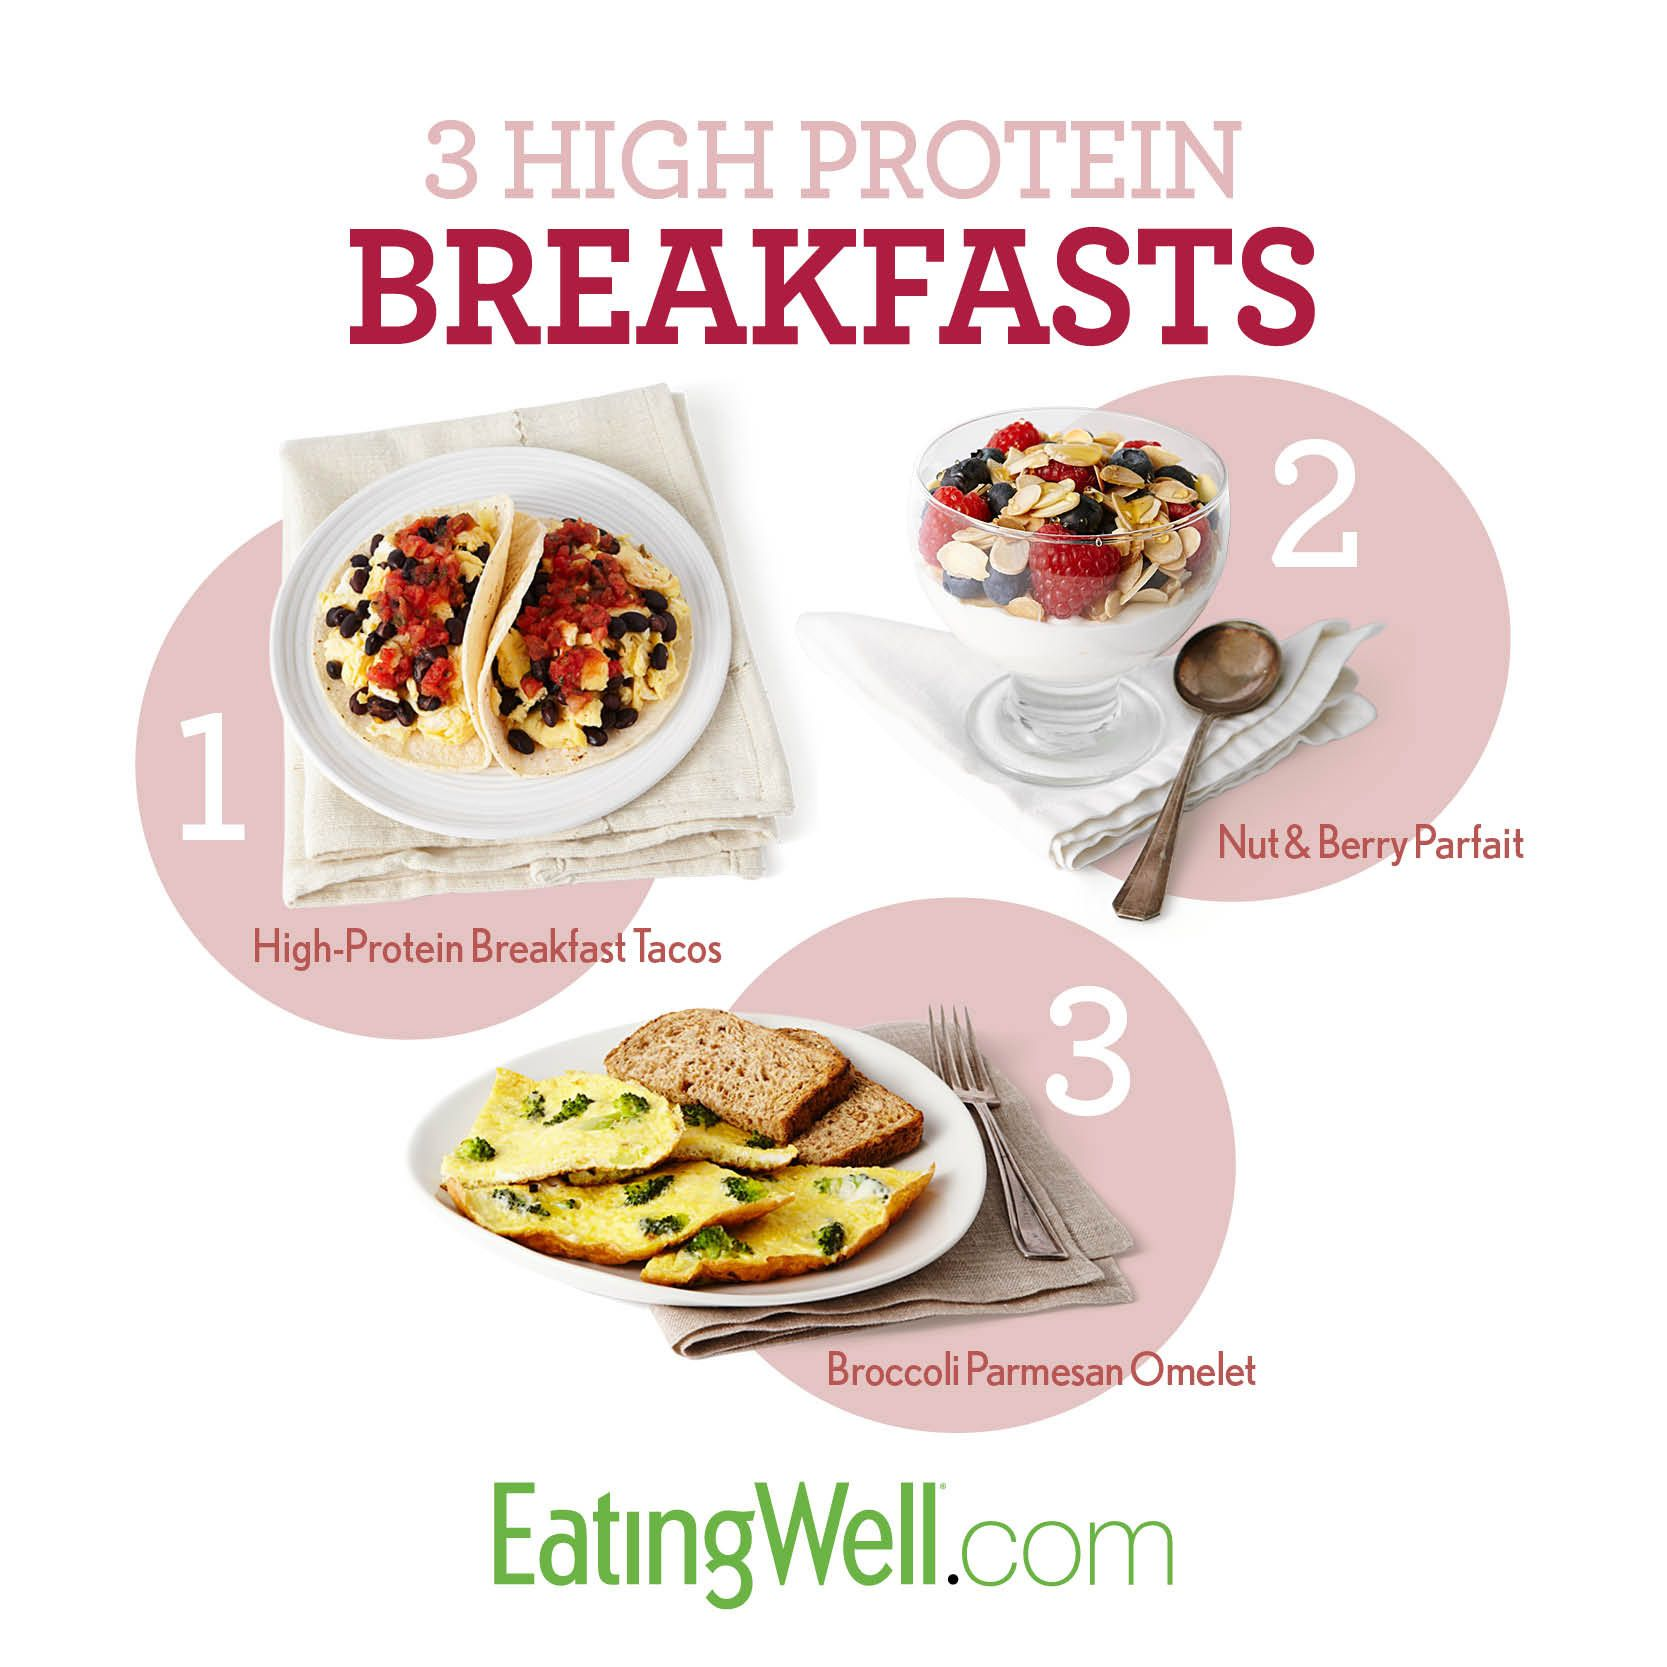 How To Get 20 Grams Of Protein For Breakfast